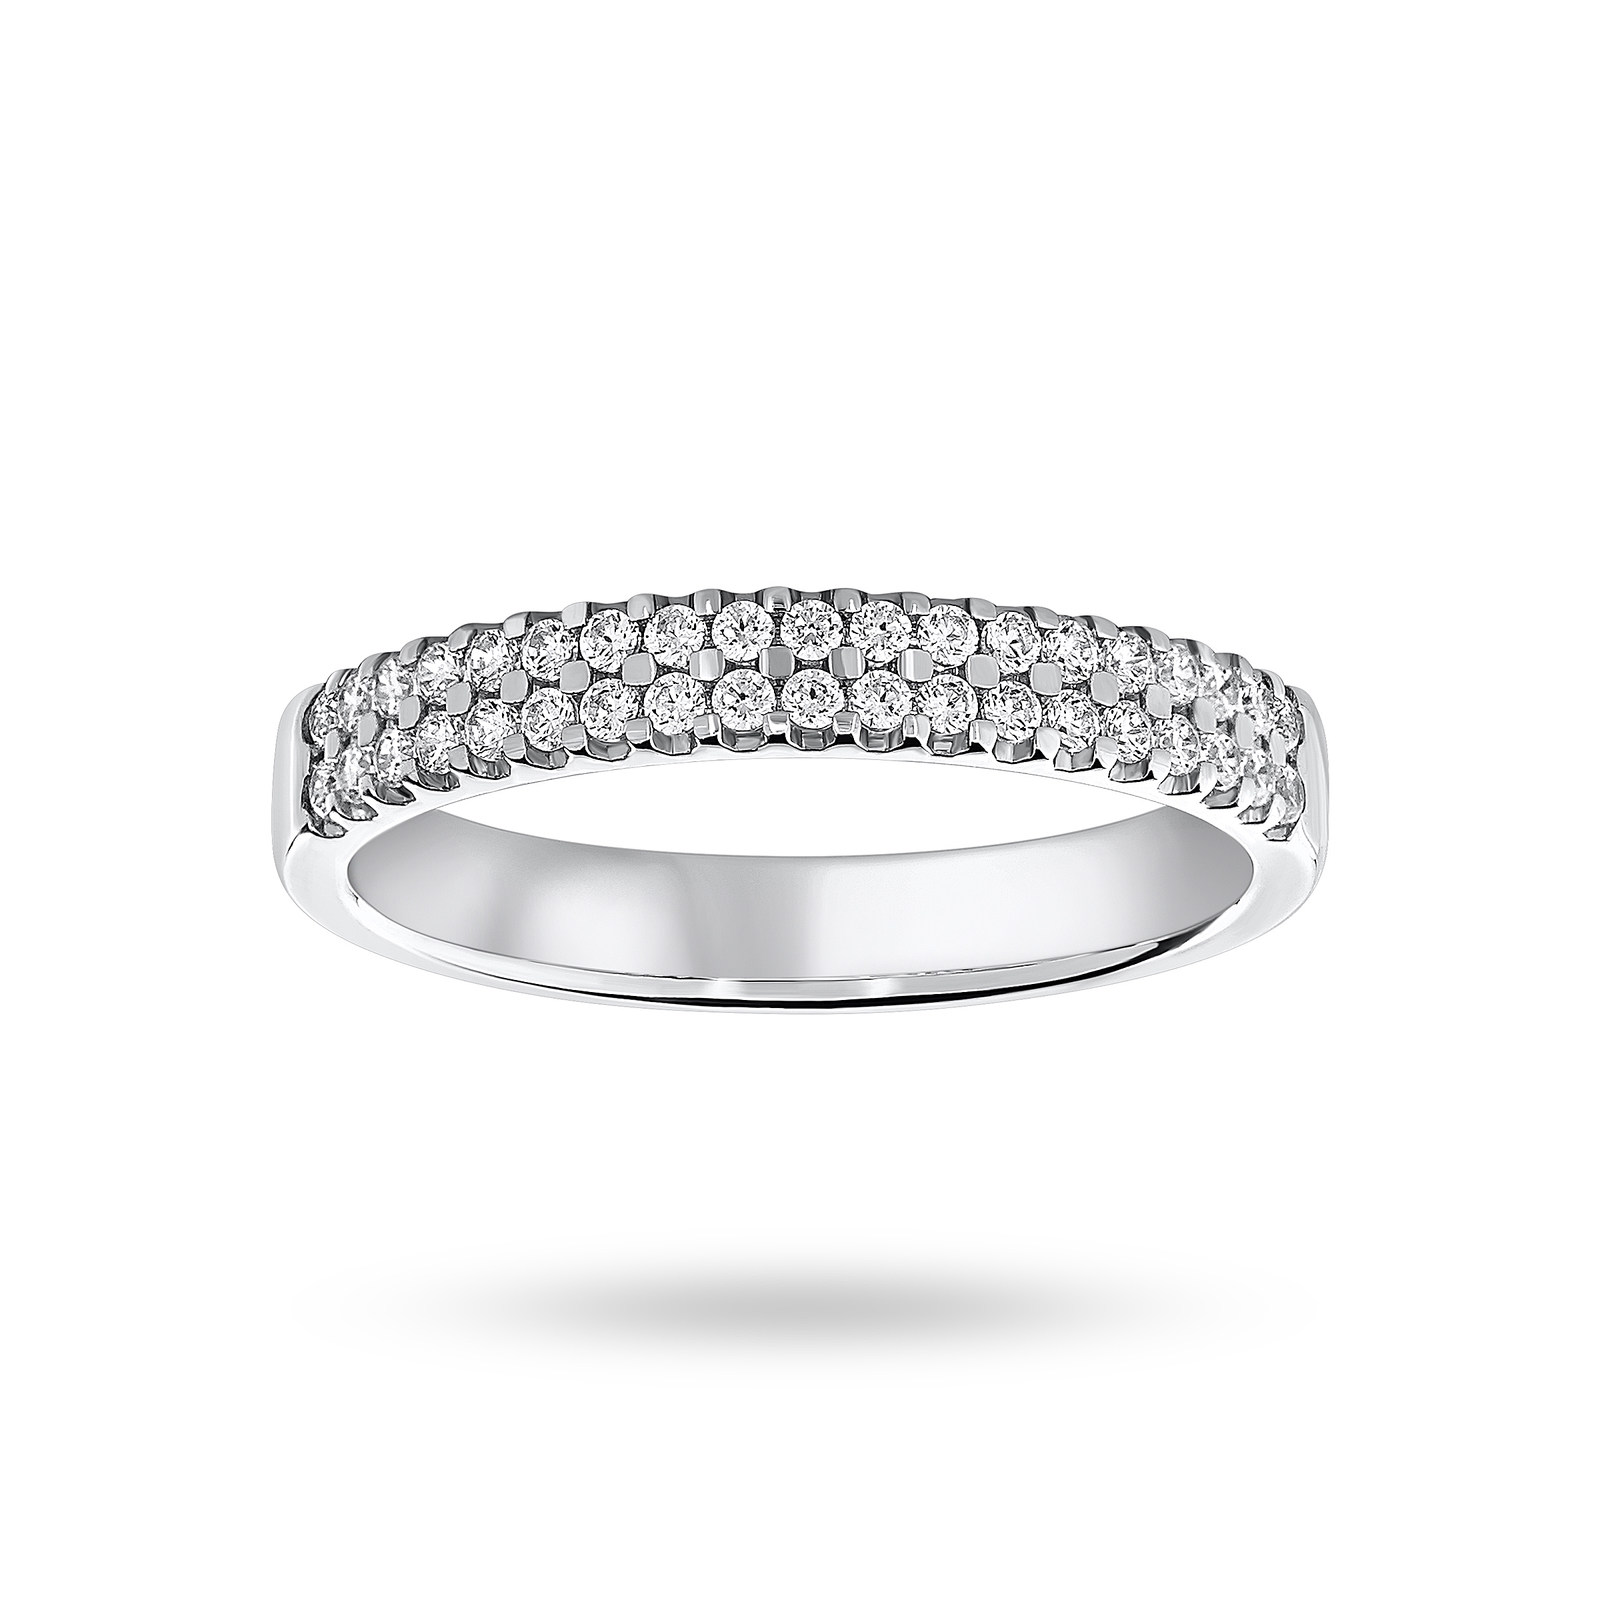 9 Carat White Gold 0.25 Carat Brilliant Cut 2 Row Claw Set Half Eternity Ring